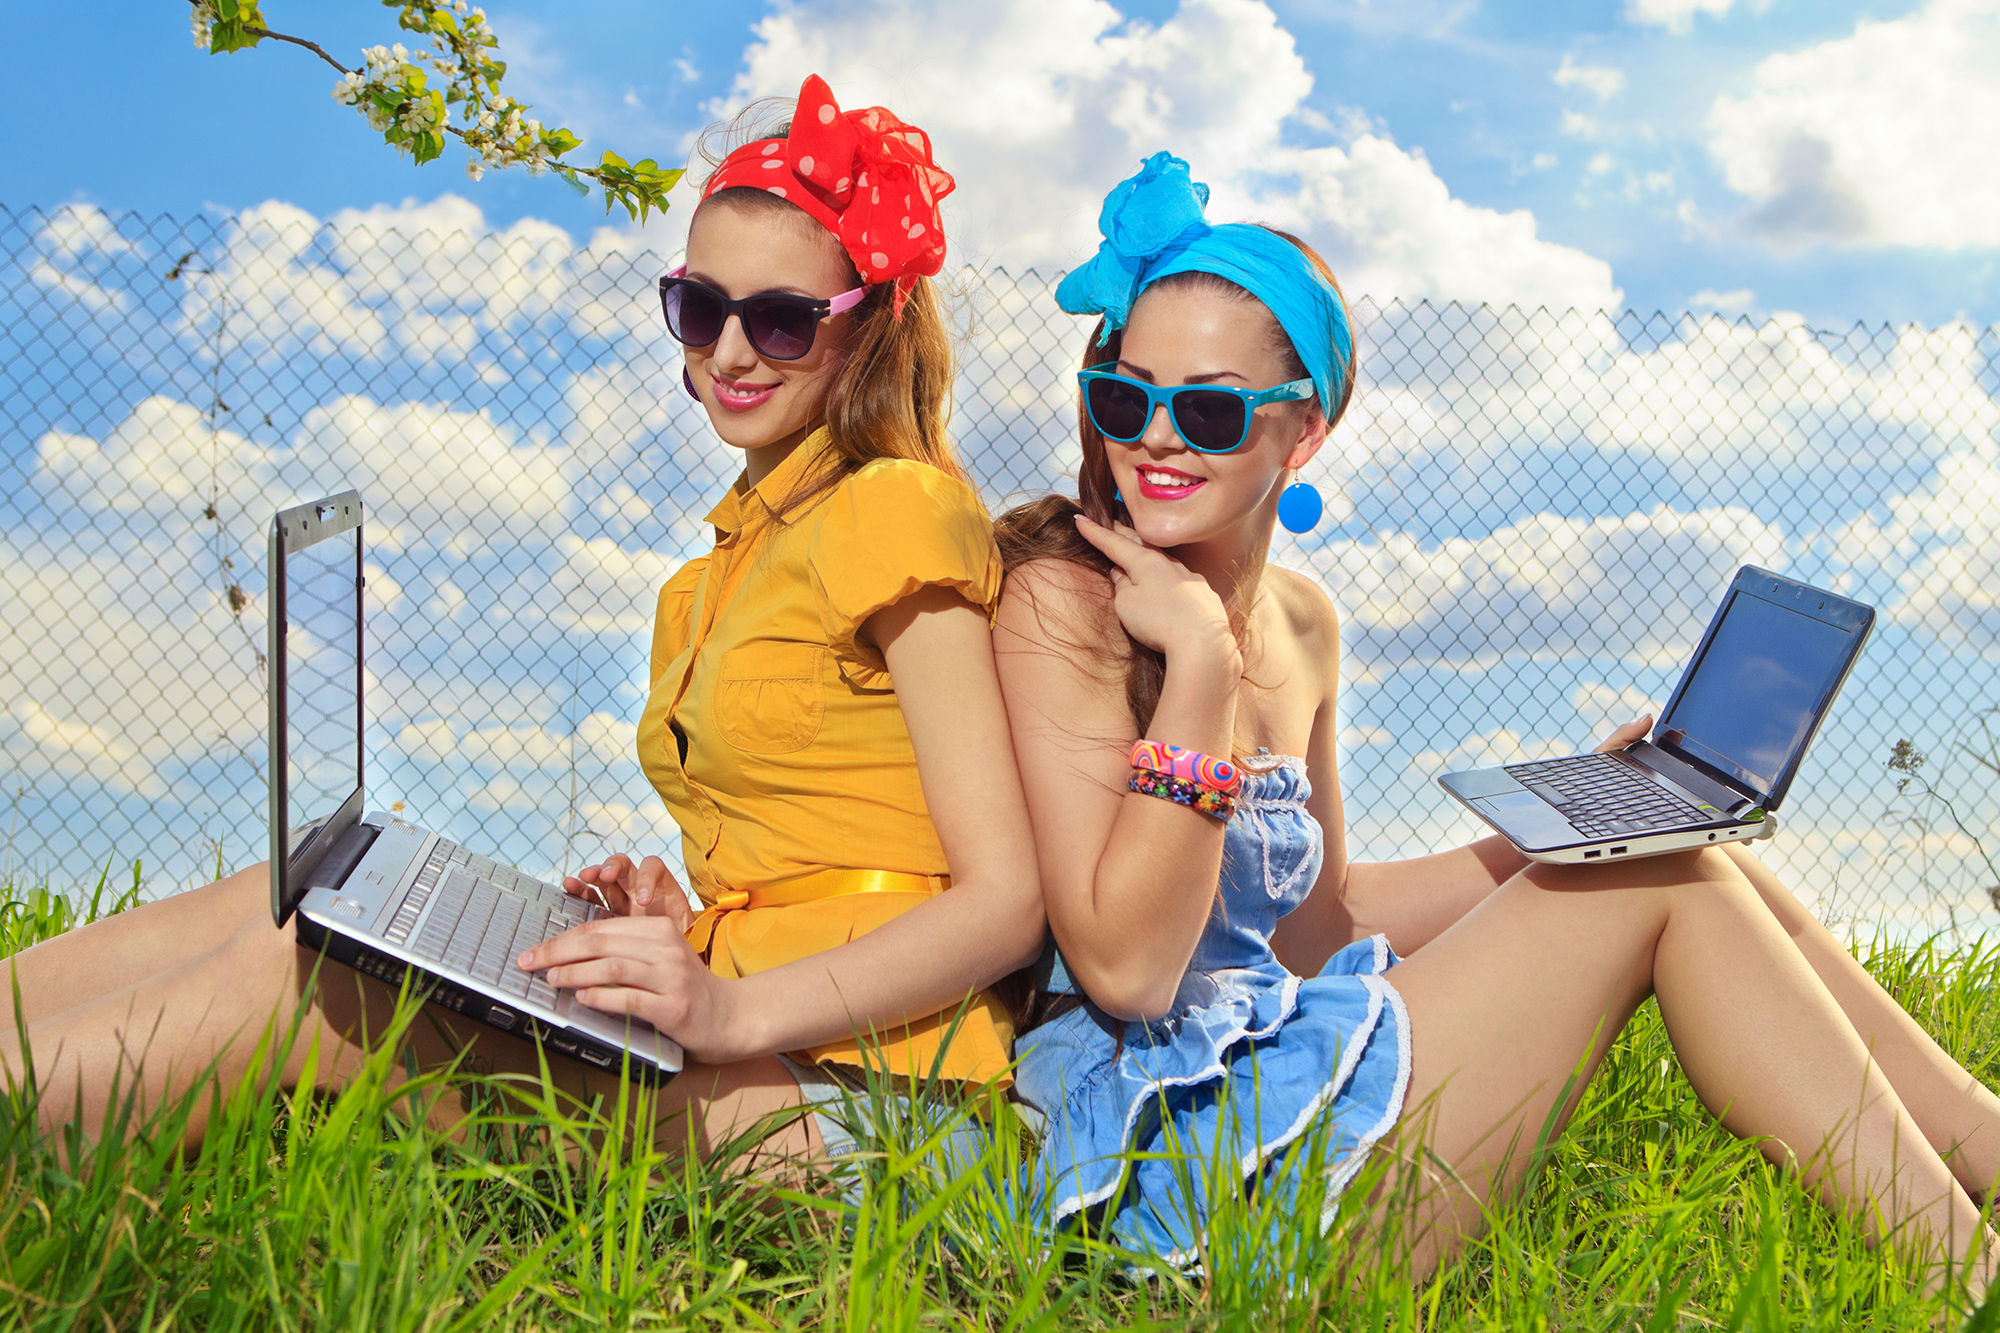 two women coding - a background image